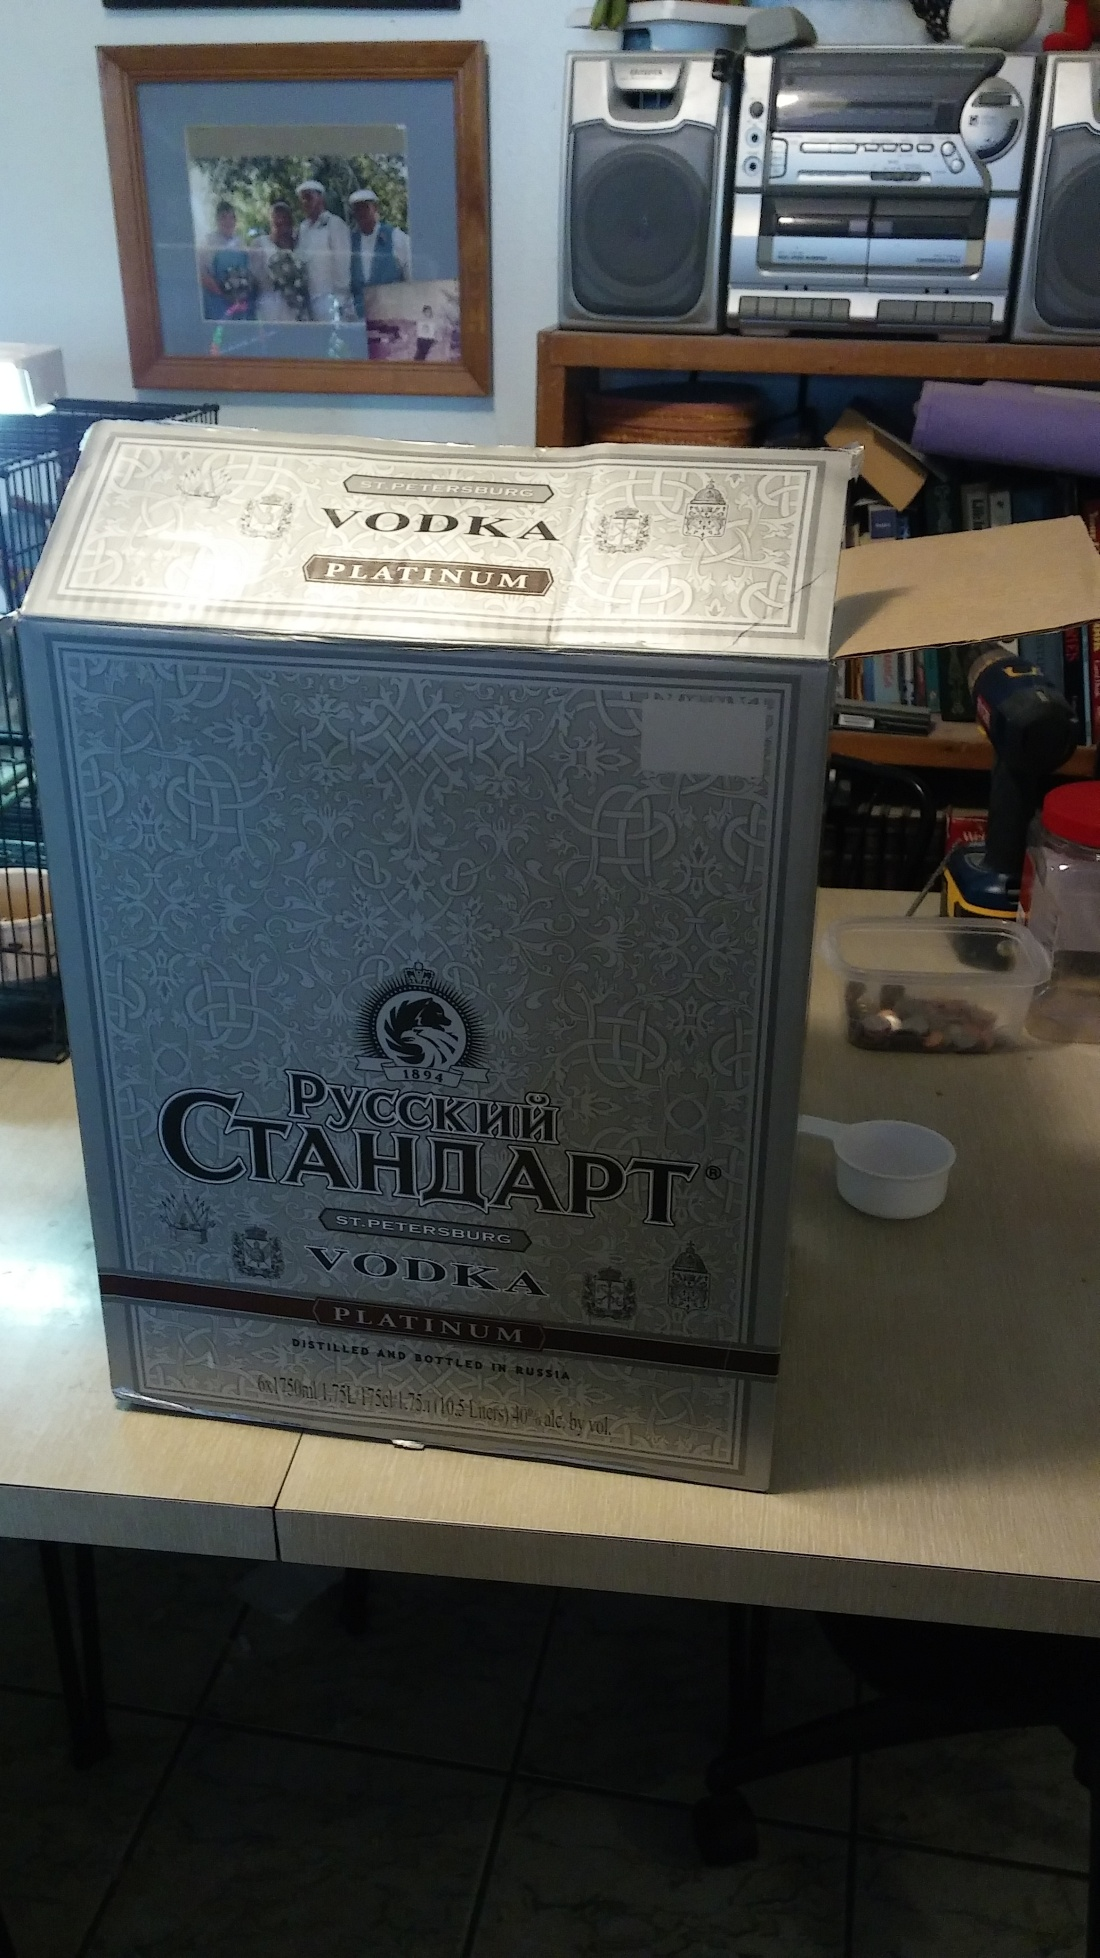 The Vodka Box